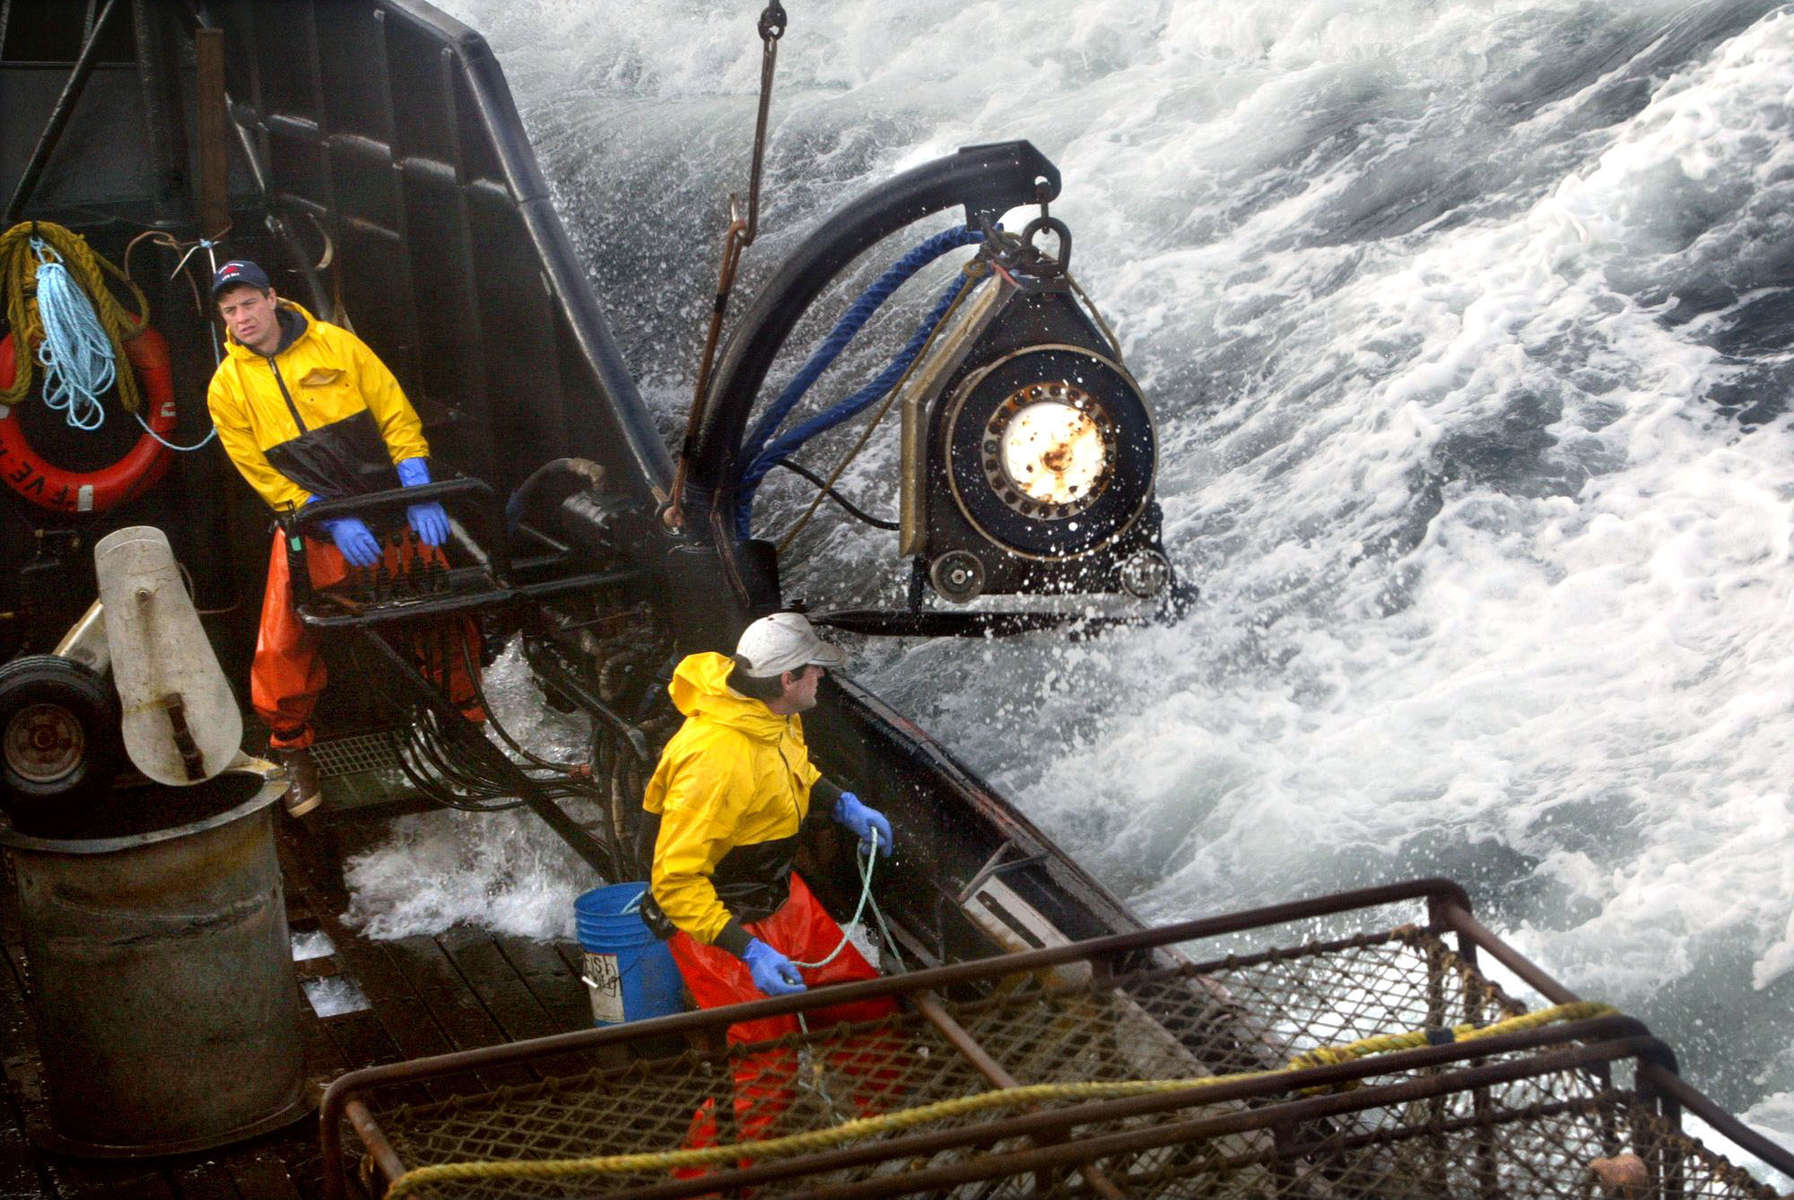 Crewman Lee Fleury prepares to throw the grappling hook at a crab pot buoy off in the distance while Lyndon Yockey (rear) runs the hydrolics to manuever heavy crab pots being stacked onboard. The 20003 Bristol Bay red king crab season lasted 5 days and 2 hours and was plagued with gale force winds of 35 knots or higher almost everyday causing to seas to rise 10 to 15 feet.